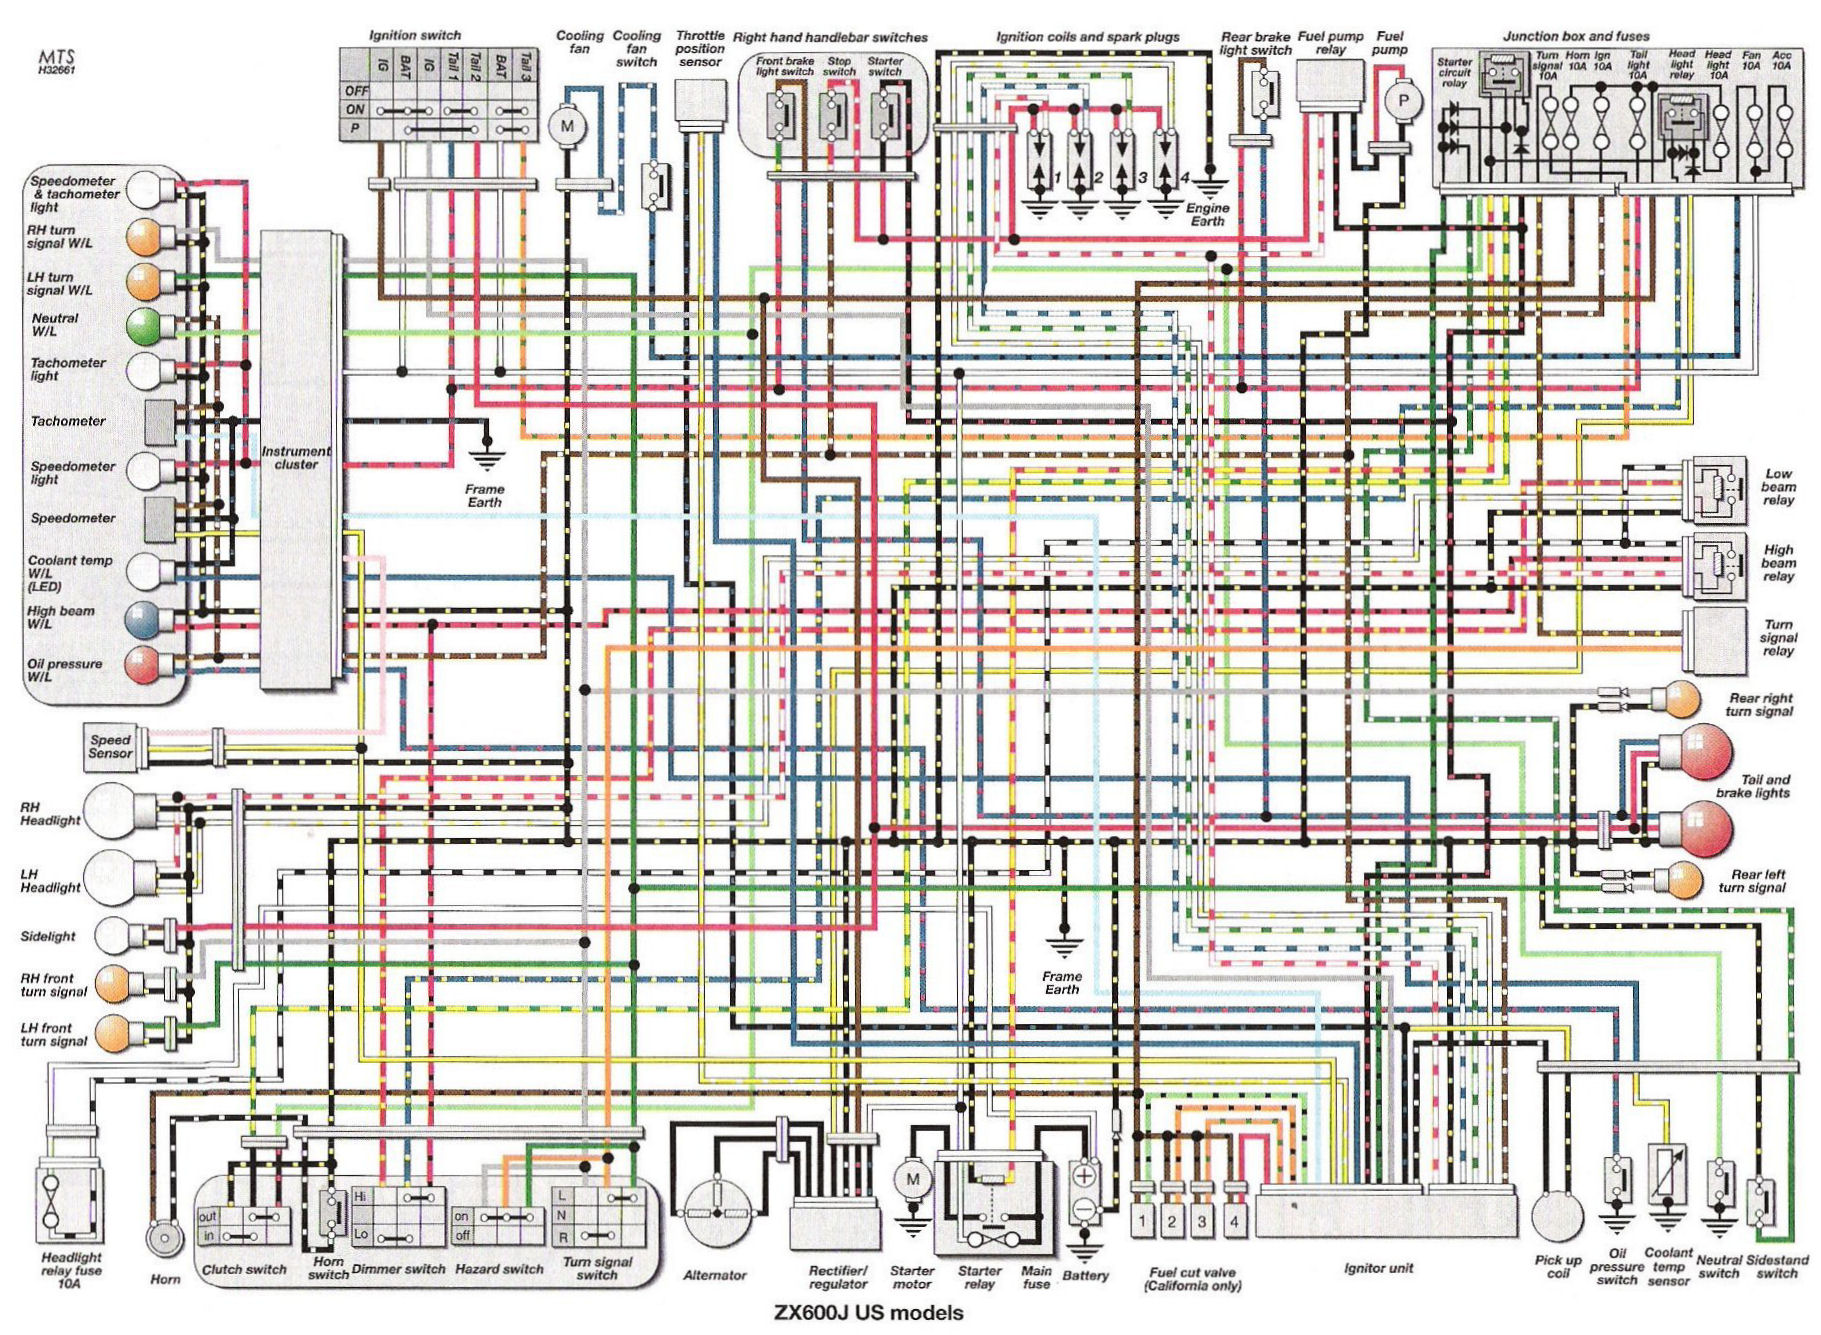 hight resolution of fz6 wiring diagram wiring diagram fascinating2012 yamaha fz6r wiring diagram wiring diagram local 2004 fz6 wiring